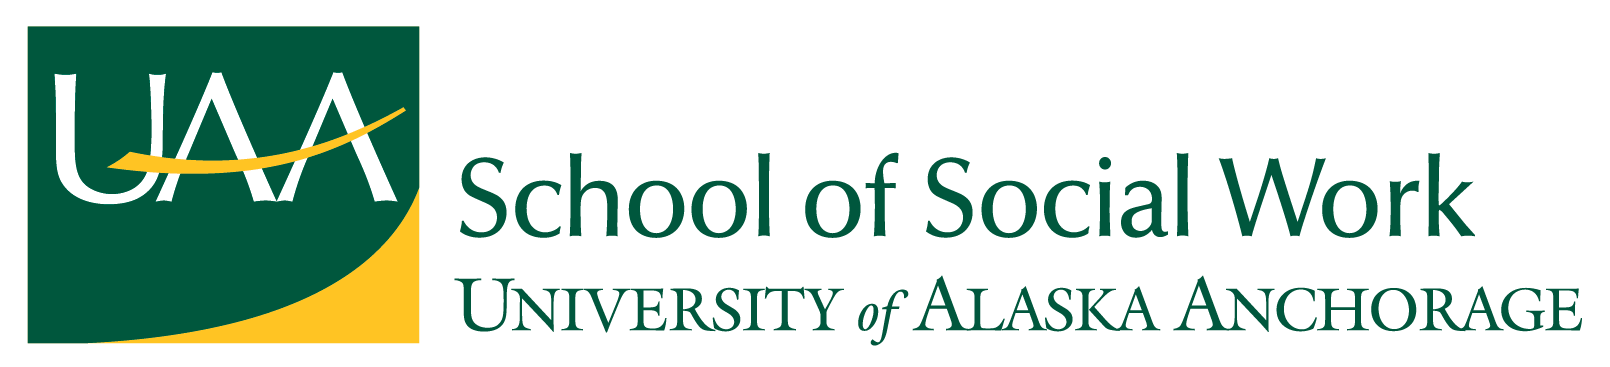 UAA School of Social Work logo